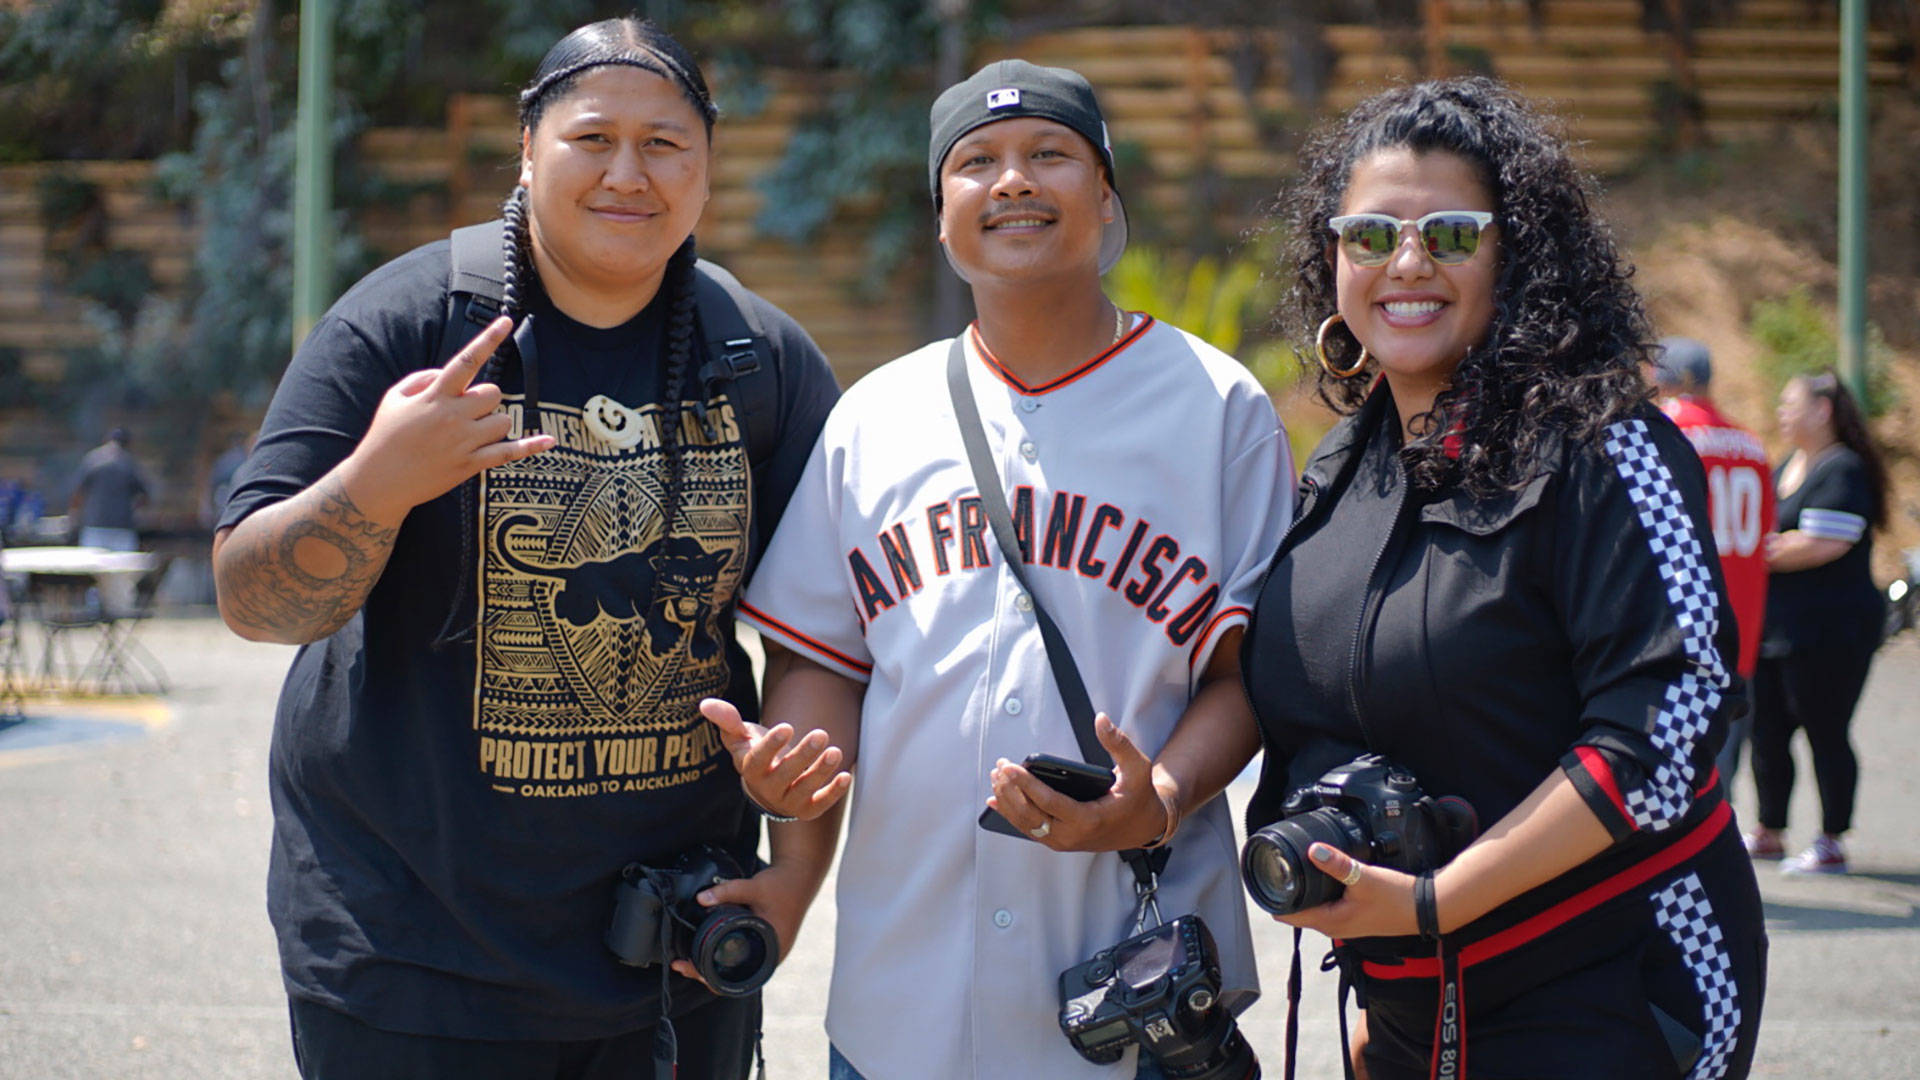 Jean Melesaine, left, with friends at the 'All My Usos' barbecue at Gilman Park in Bayview / Hunters Point. Pendarvis Harshaw